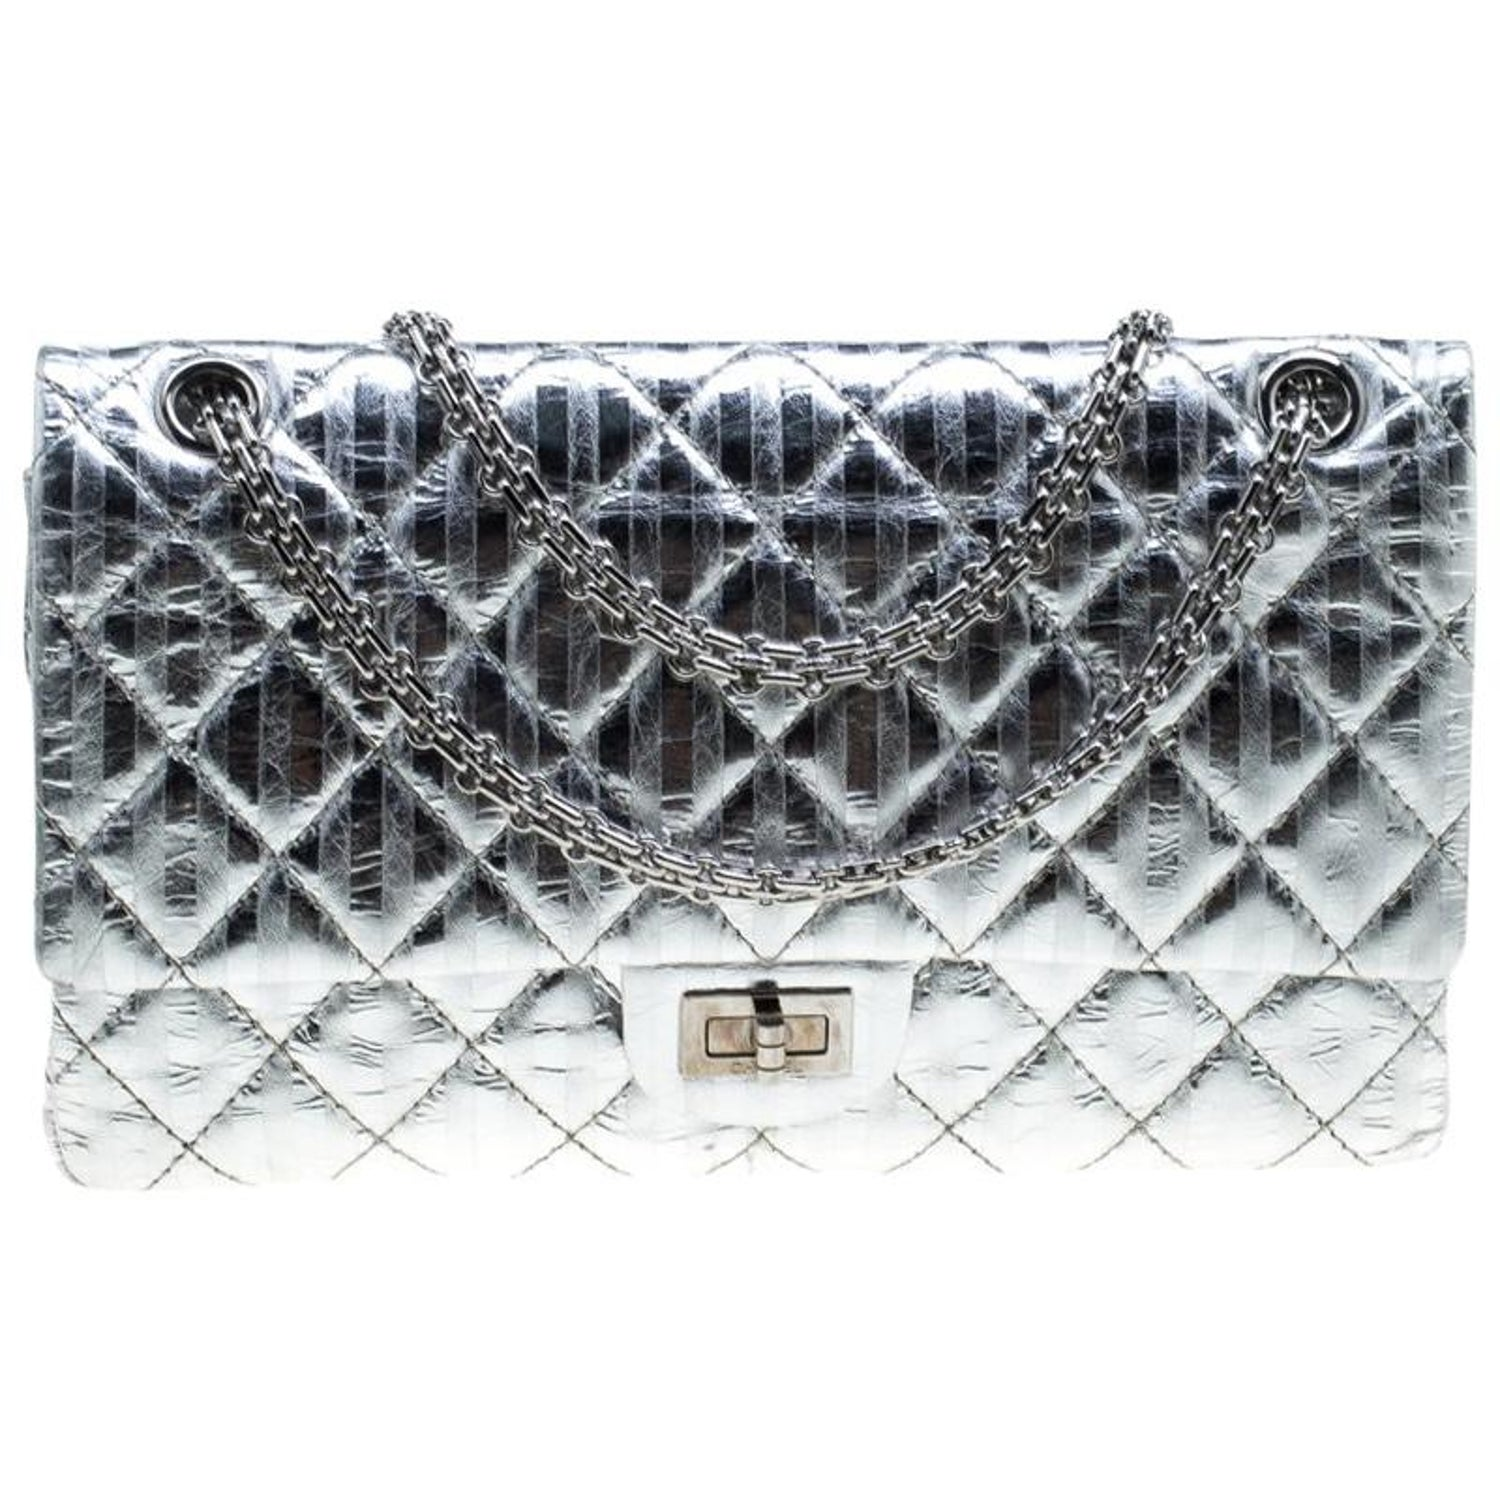 640792d4b895 Chanel Silver Quilted Leather Striped Reissue 2.55 Classic 226 Flap Bag For  Sale at 1stdibs